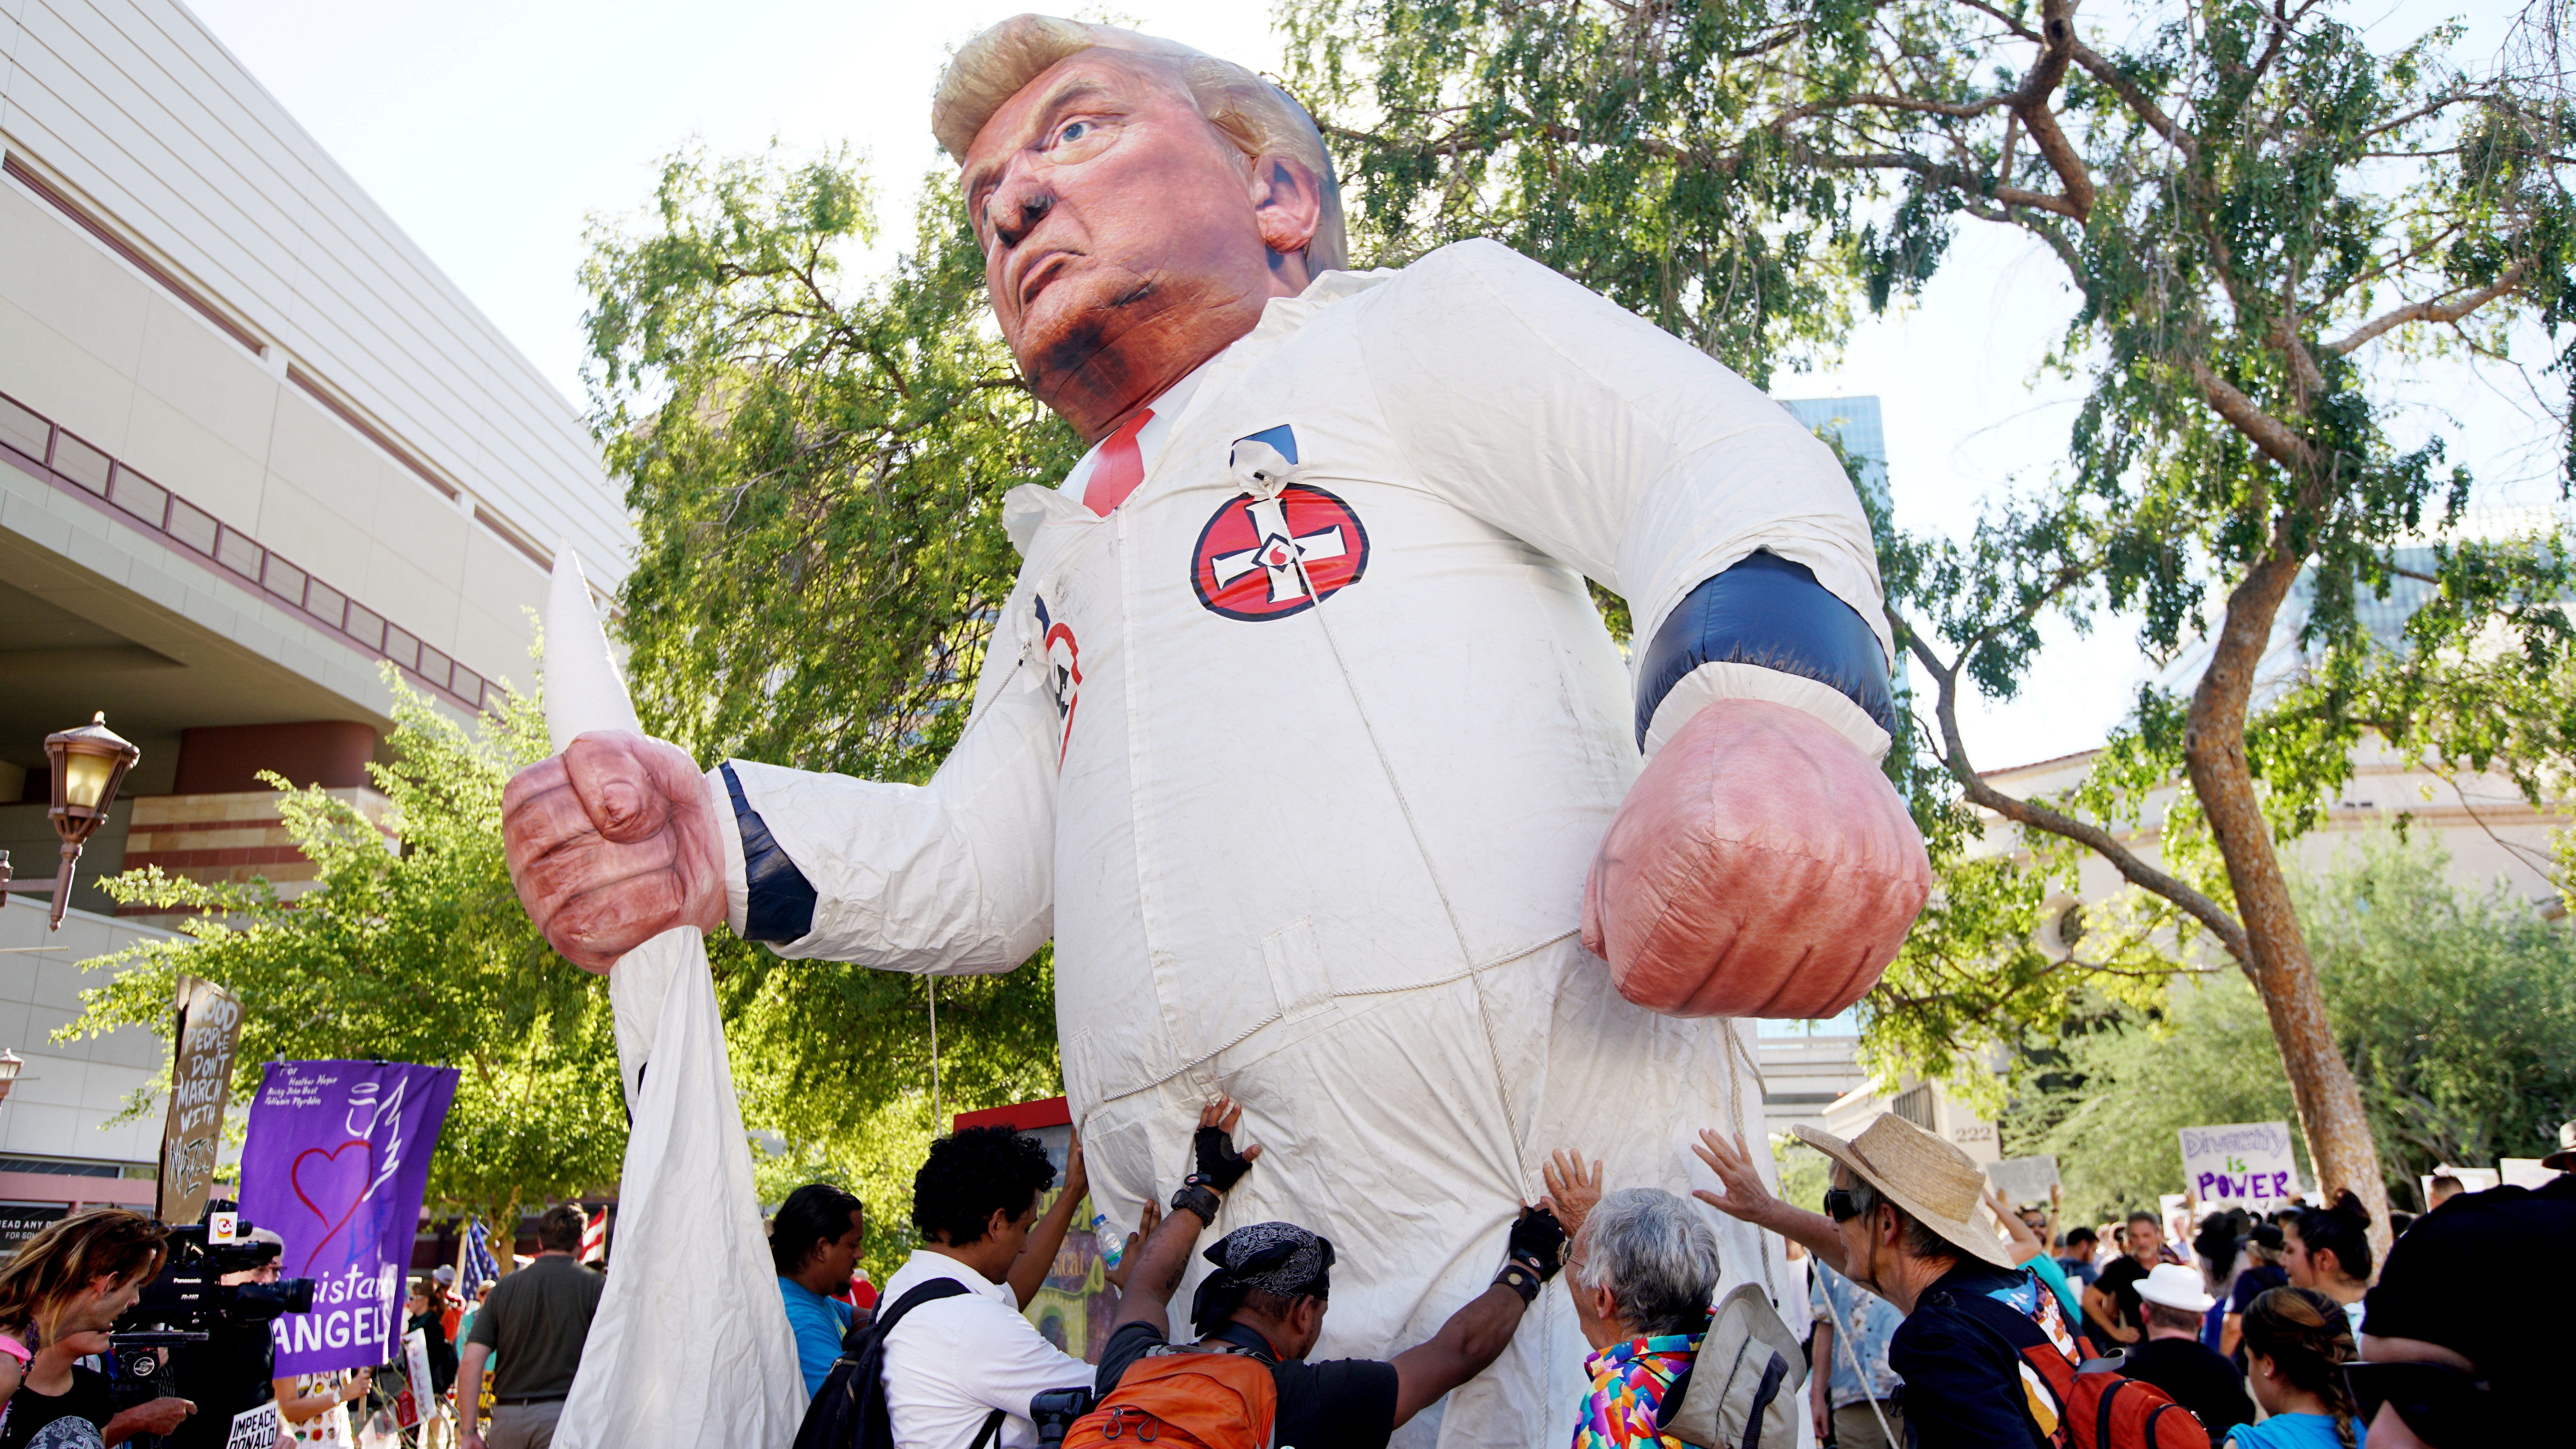 protests outside a Donald Trump campaign rally in Phoenix,